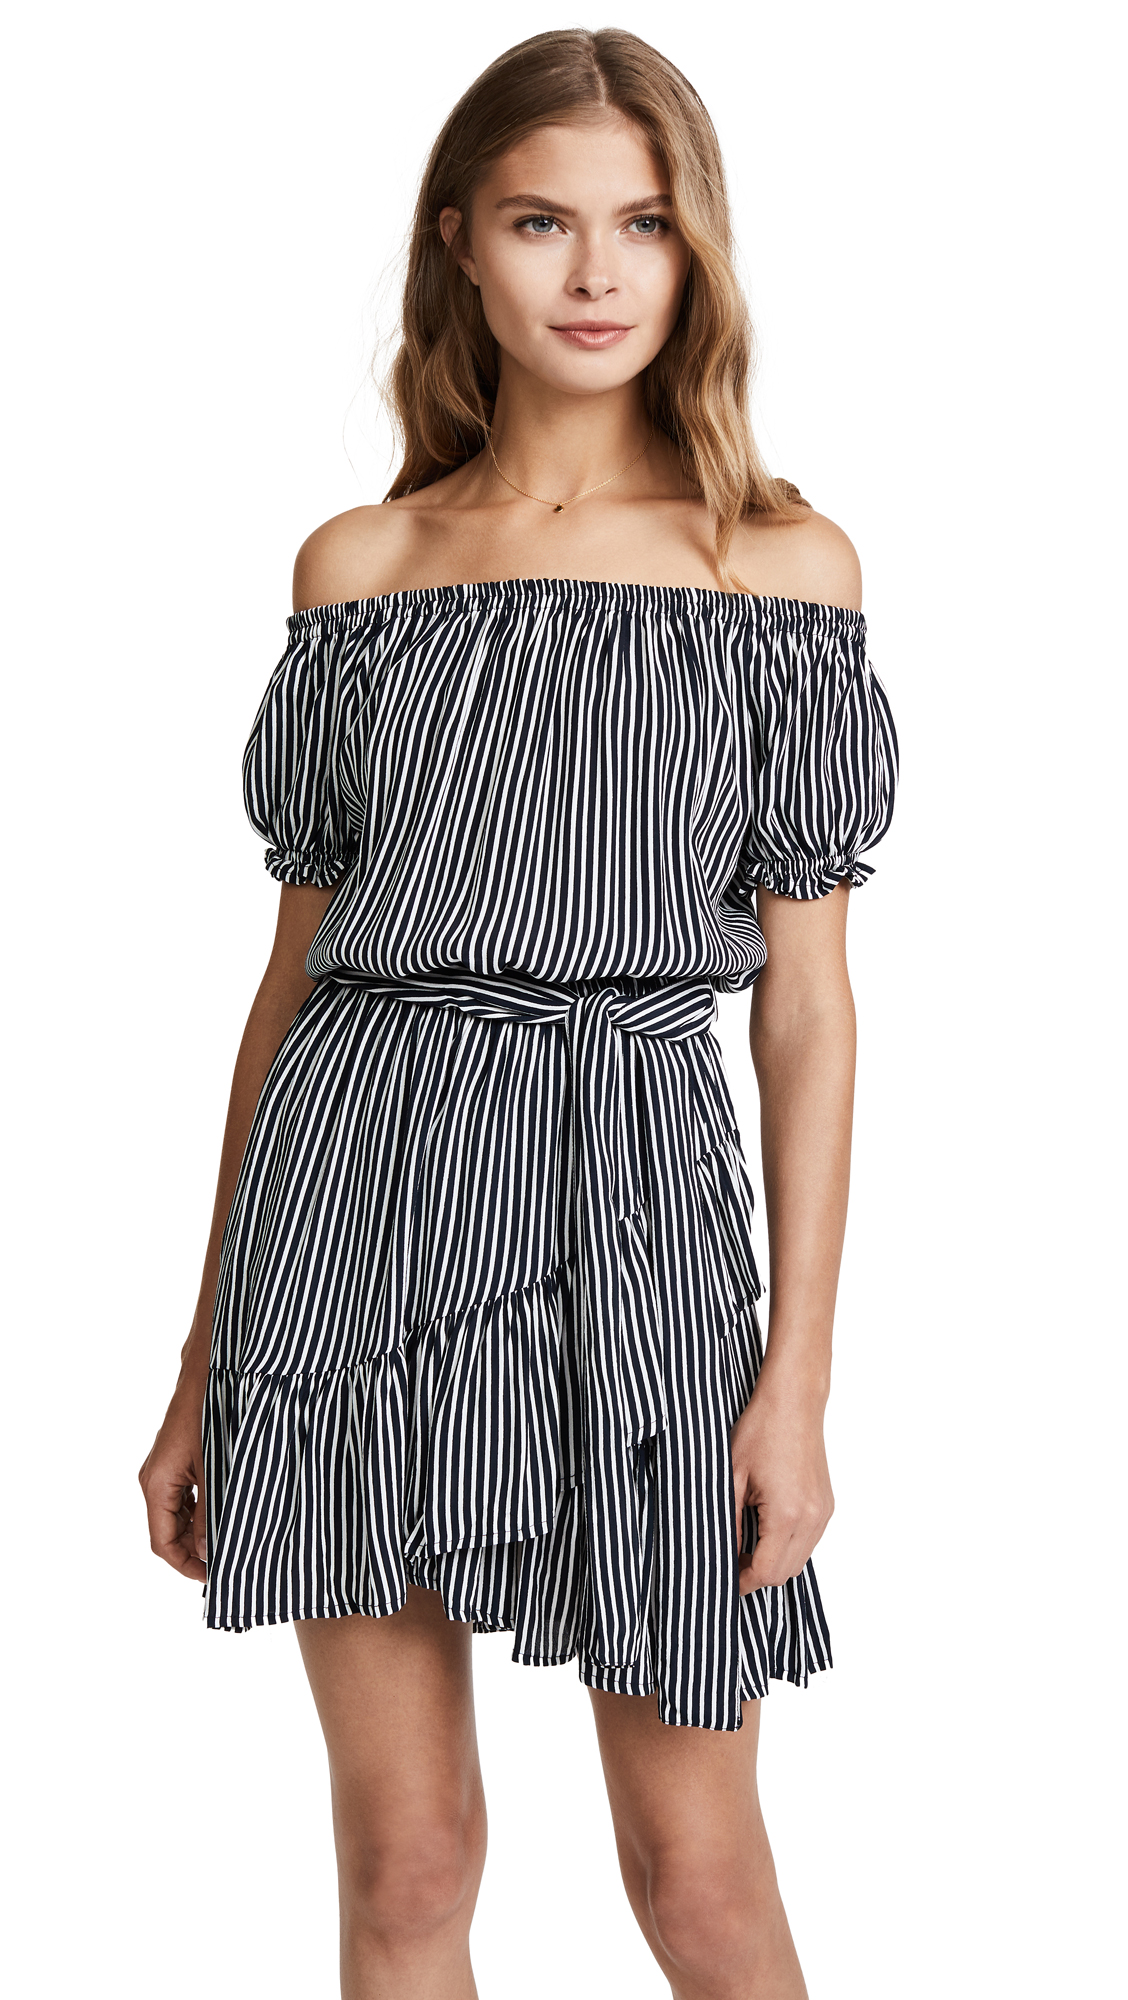 FAITHFULL THE BRAND Icaria Dress - Cap Maison Stripe